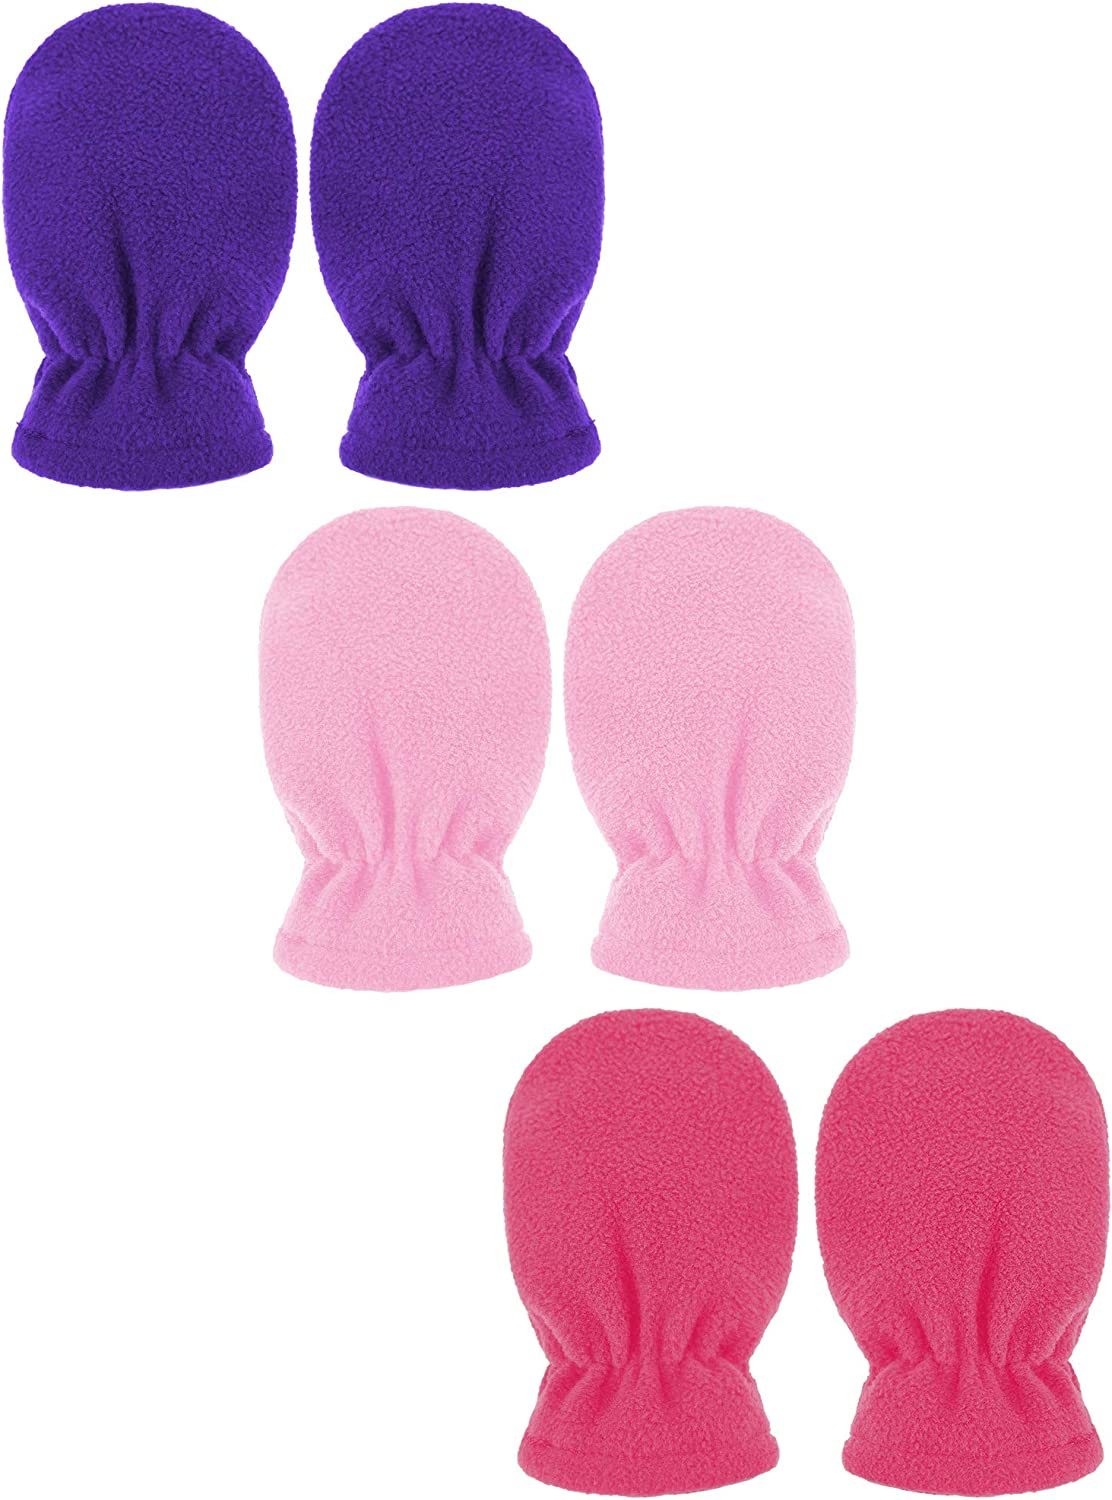 QKURT 3 Pairs Toddler Mittens Full Finger Winter Warm Kids Gloves Lined Fleece Thermal Mittens for 0~3 Years Old Baby Girls Boys